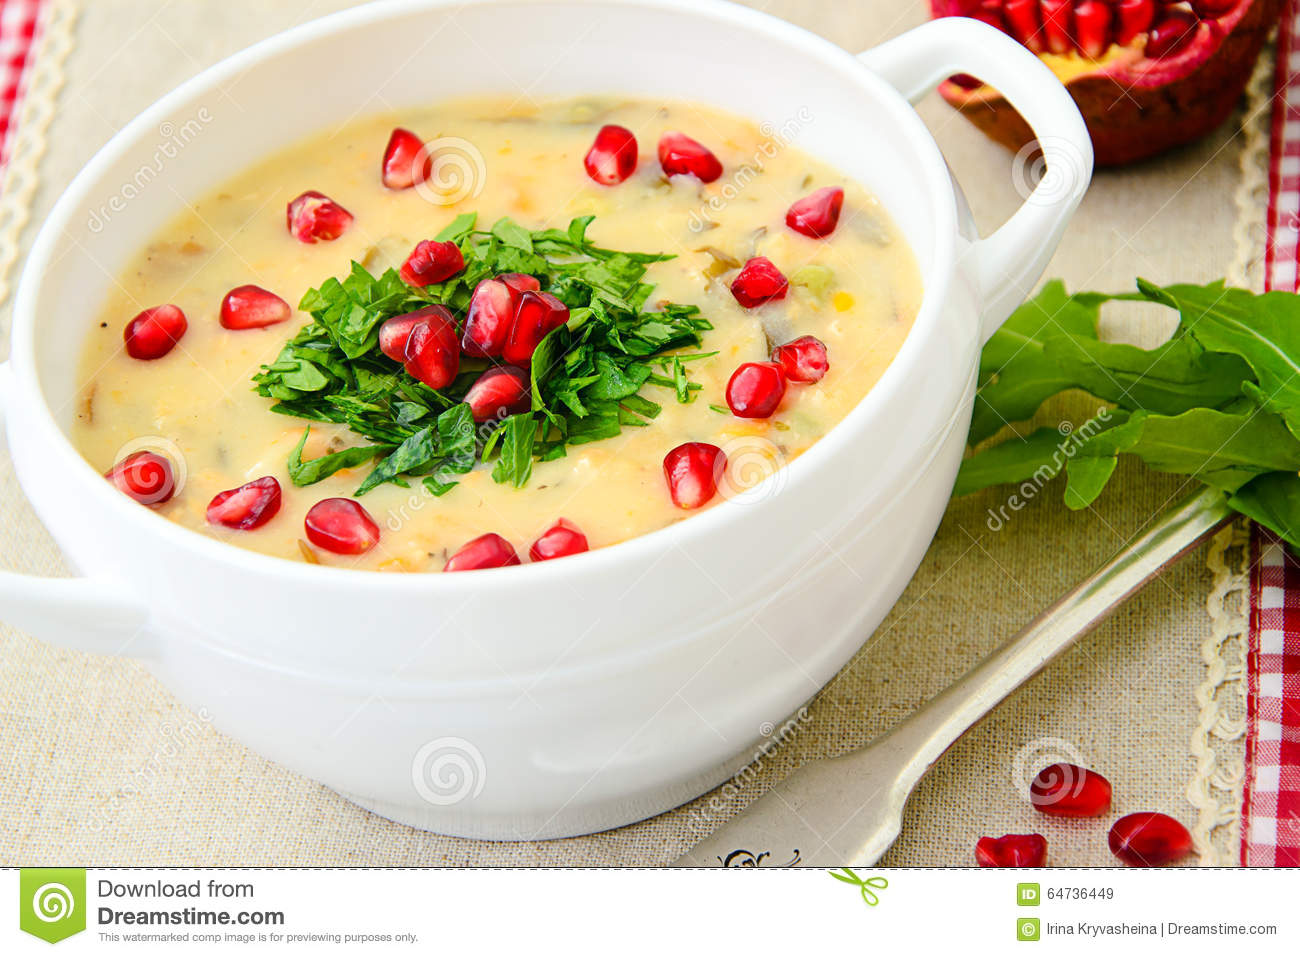 Healthy and Diet Food: Soup of Fish with